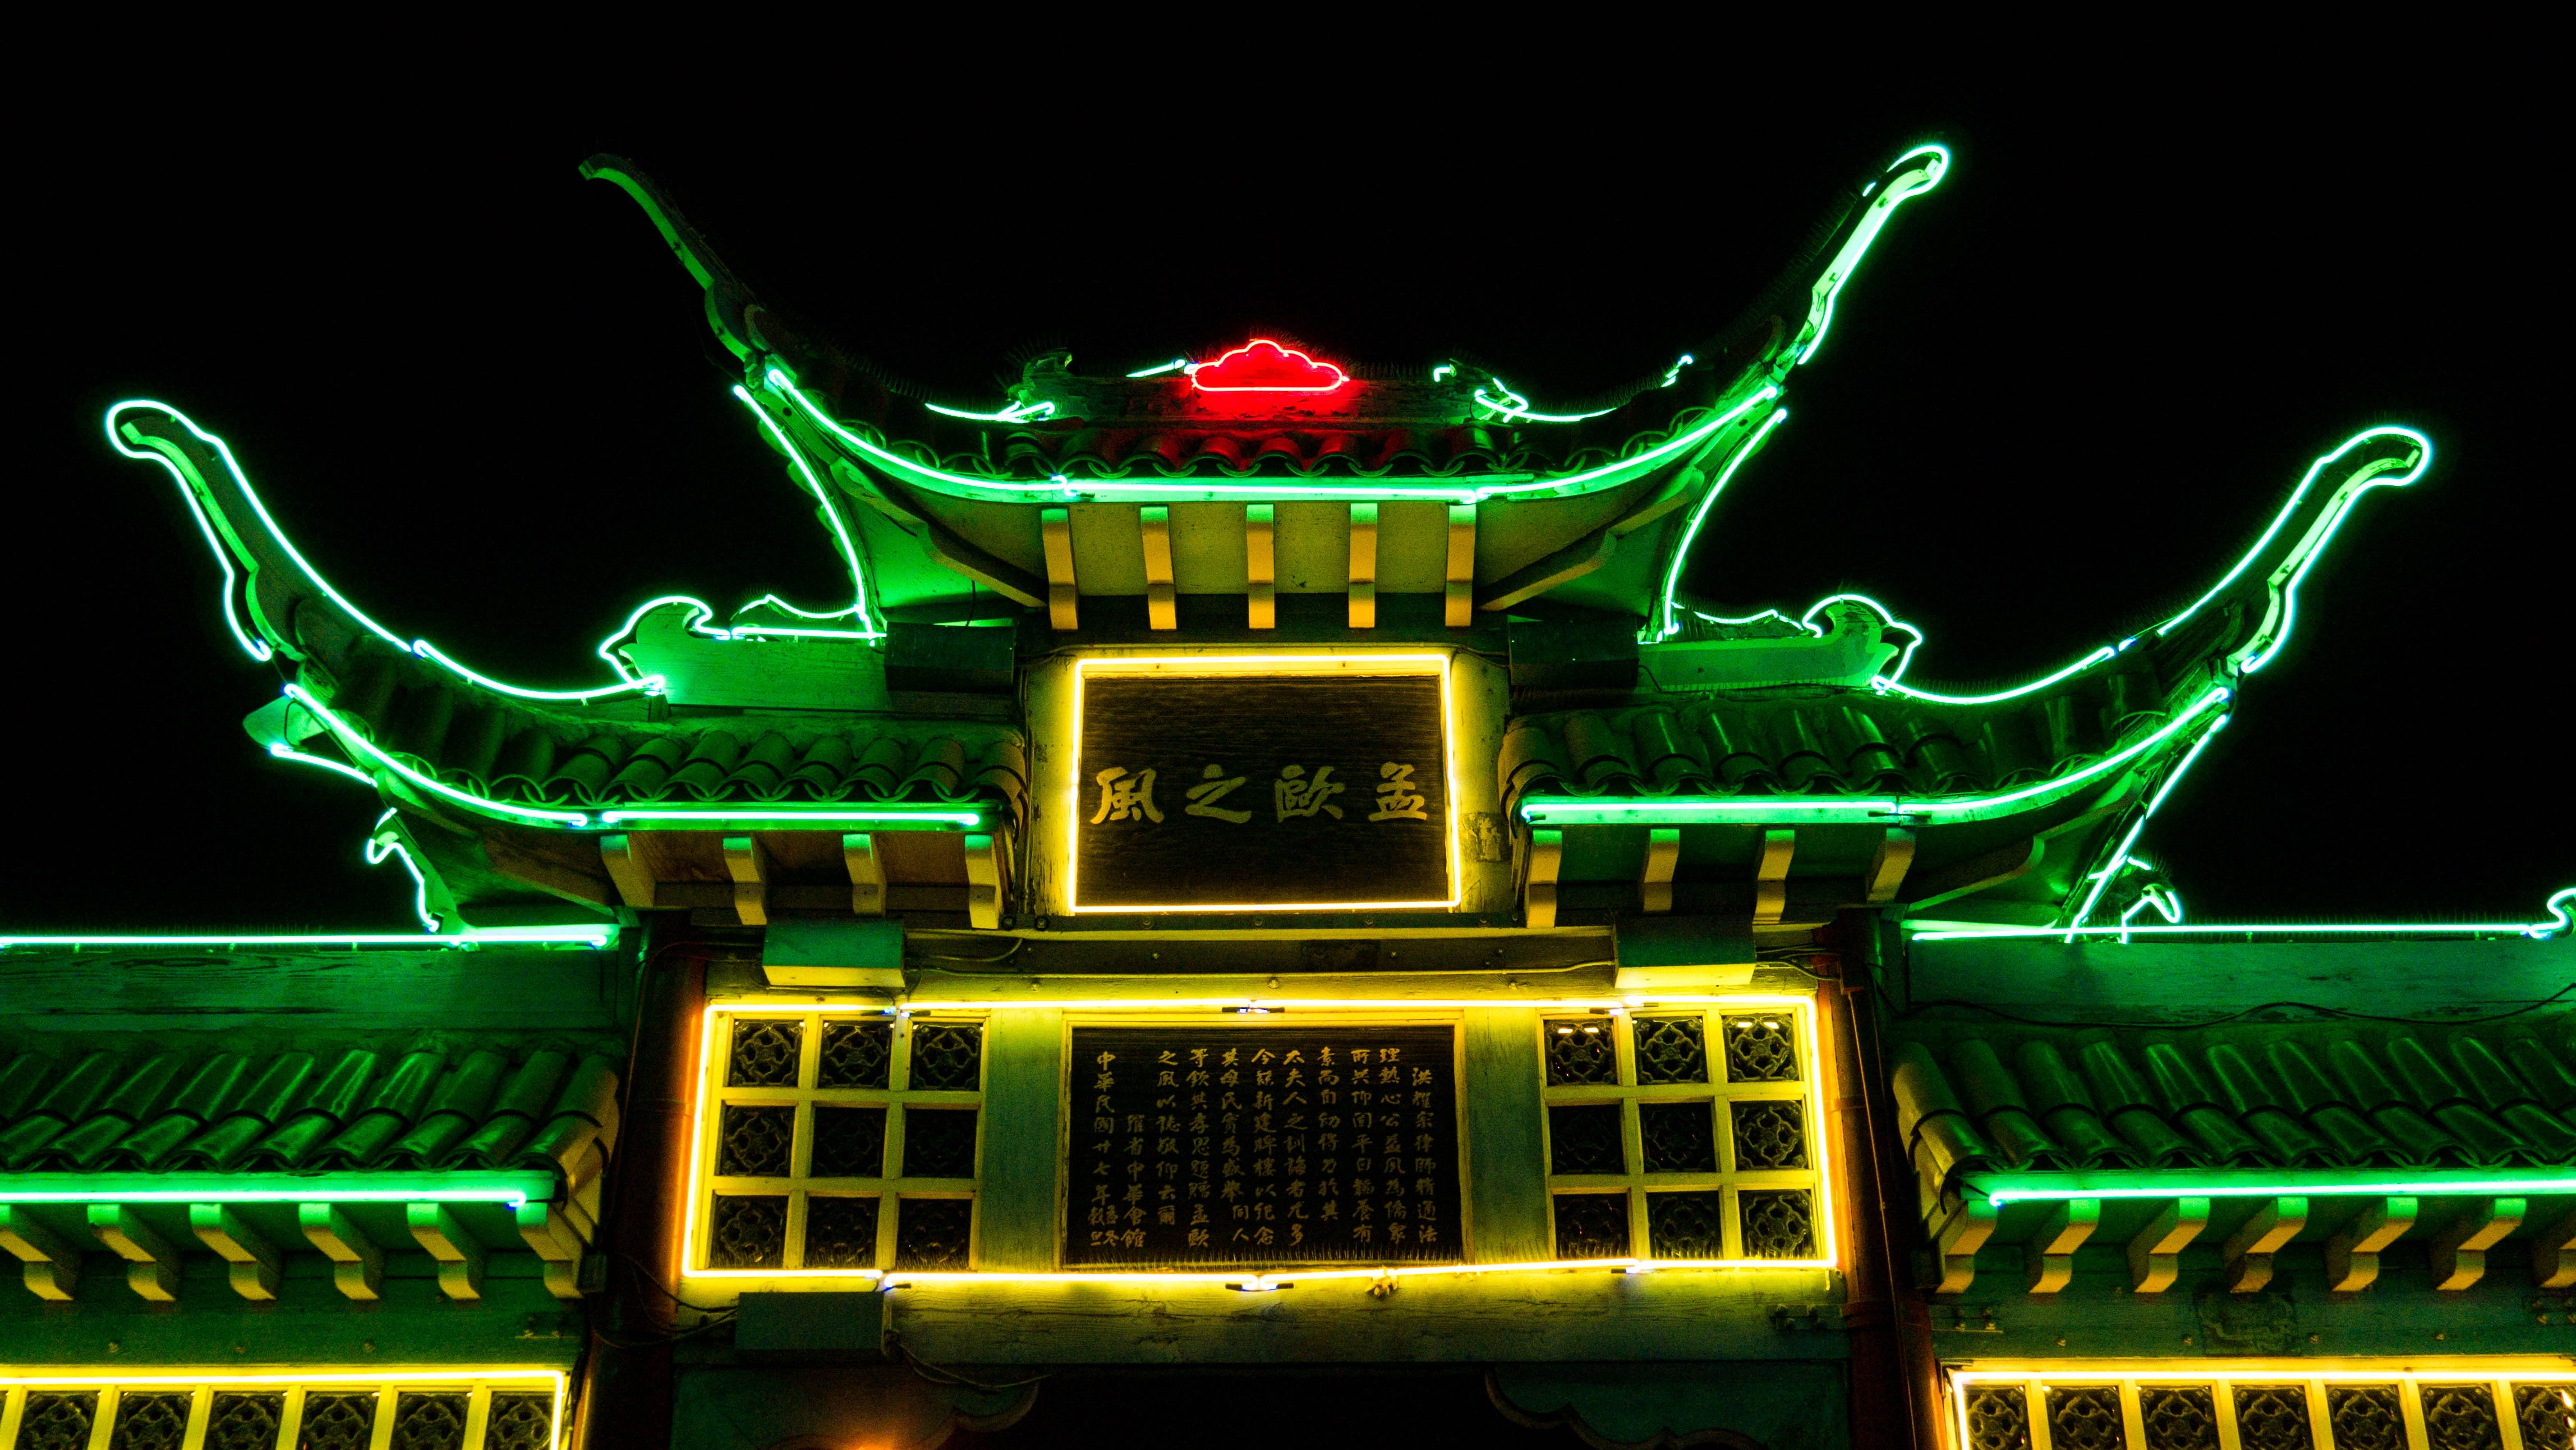 photo of green and yellow shrine